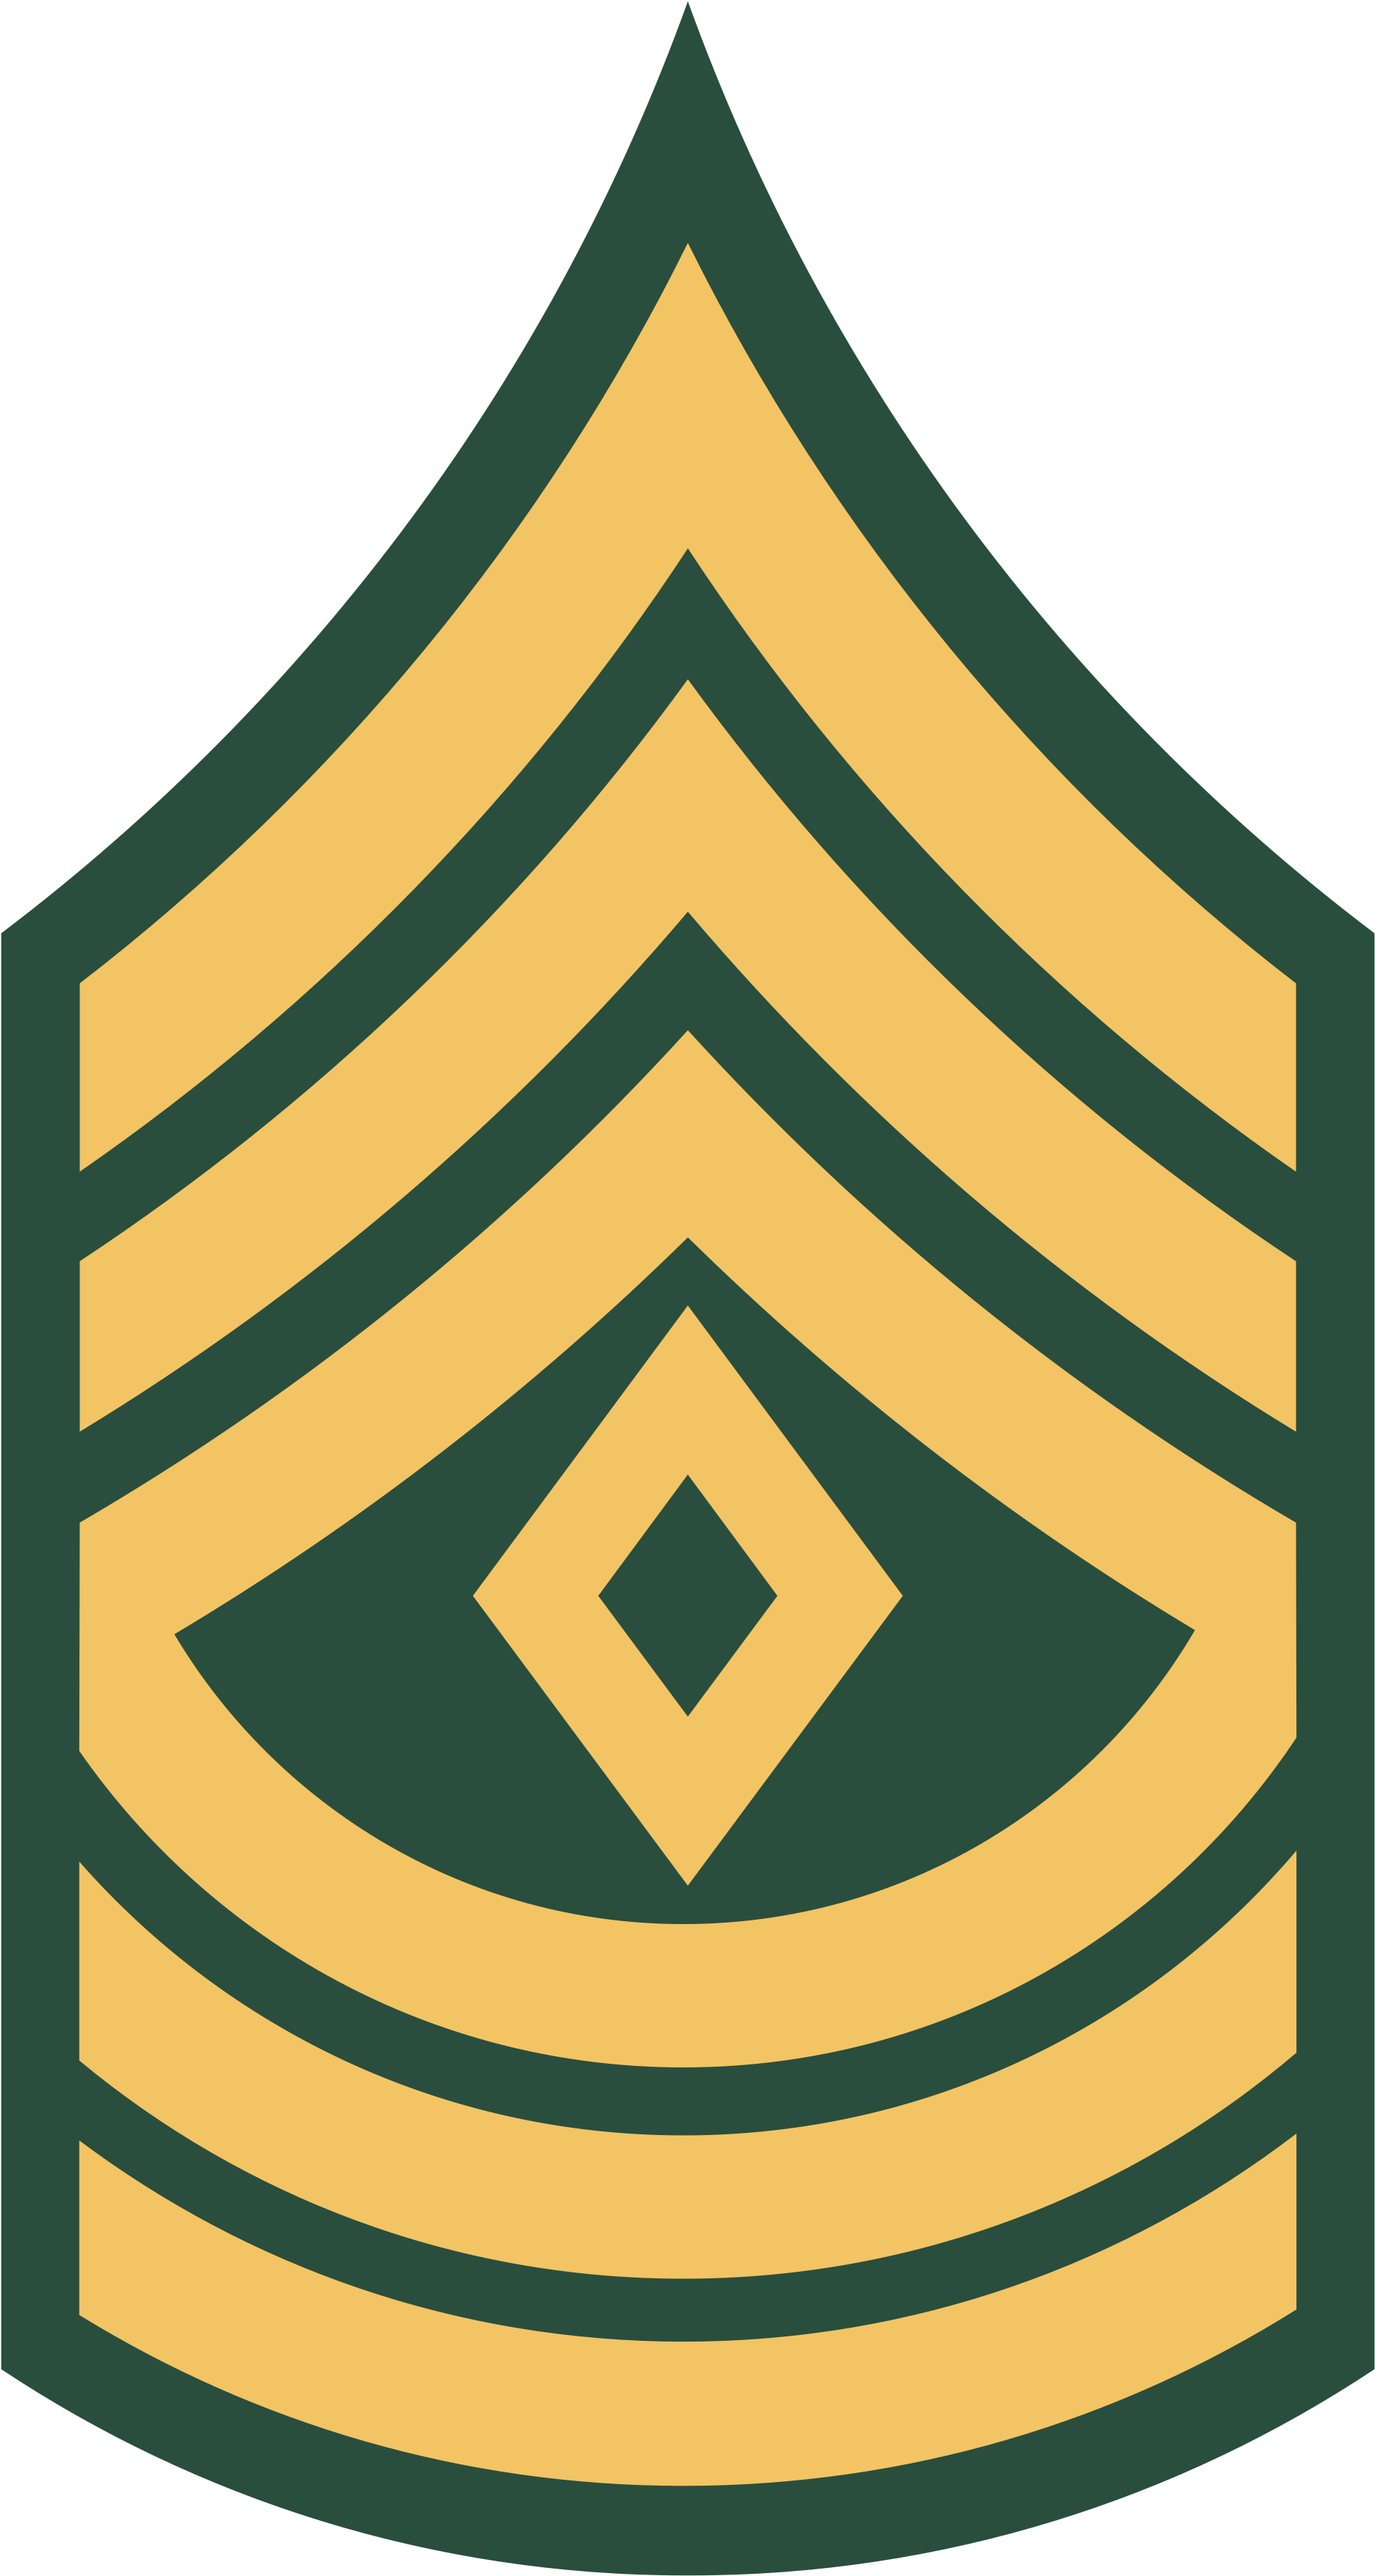 Military Stripes Clipart Clip Art Library - Army First Sergeant Rank (2000x3600), Png Download